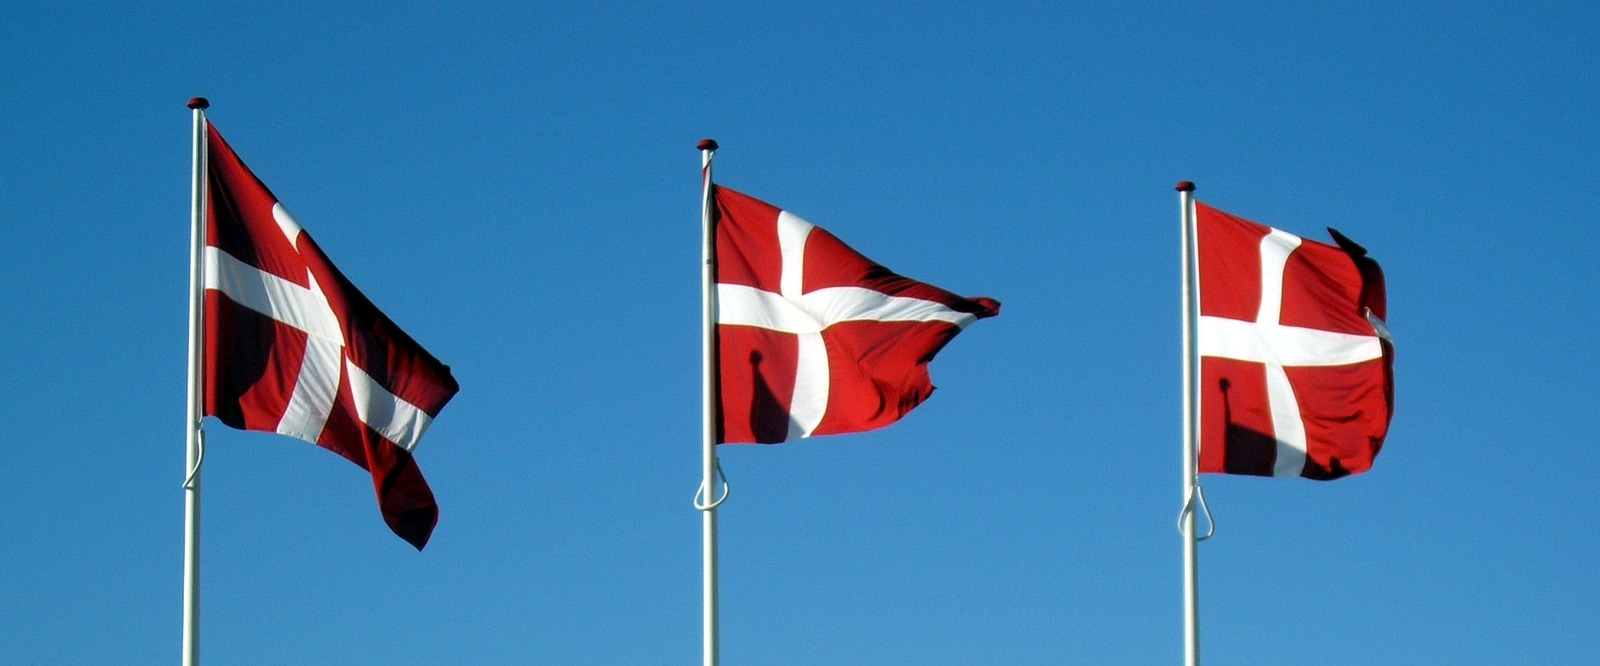 It is the oldest country flag that is still in use: the Dannebrog. This is Danish for Danish banner or cloth. The flag is mentioned for the first time in a source from the 14th century.